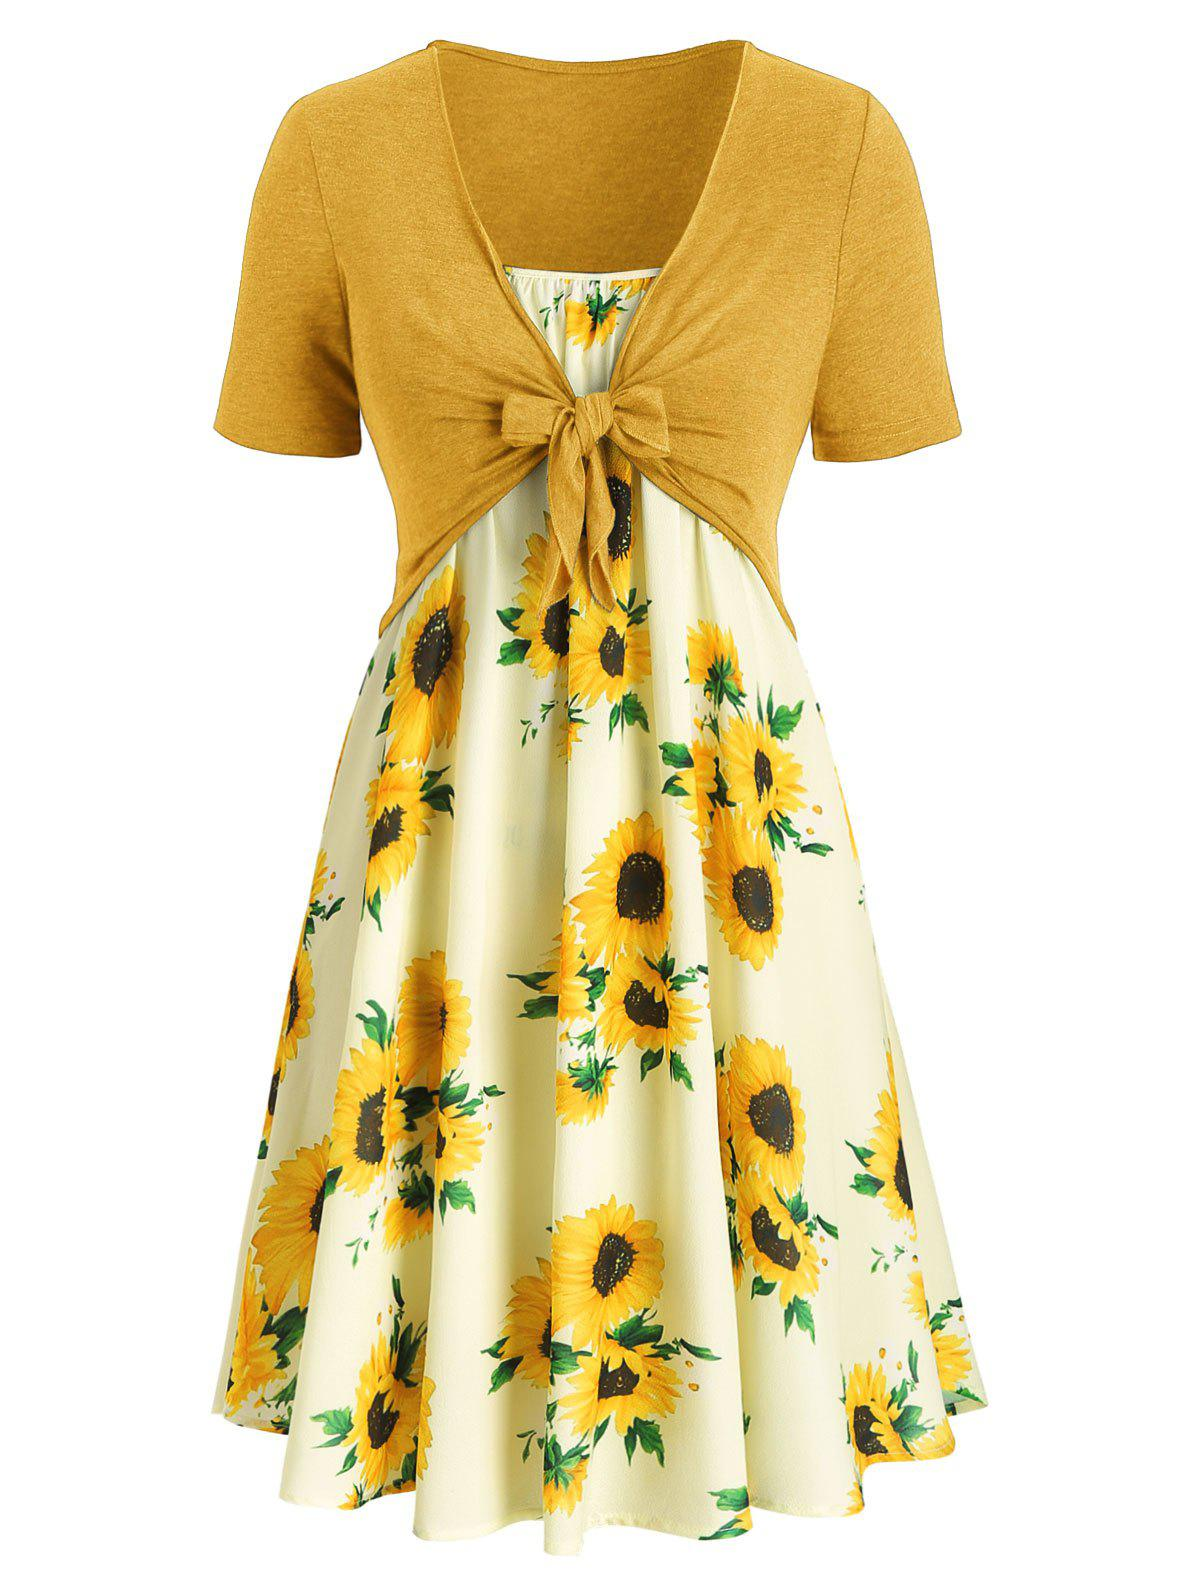 Shop Plus Size Sunflower Print Knotted Two Piece Dress